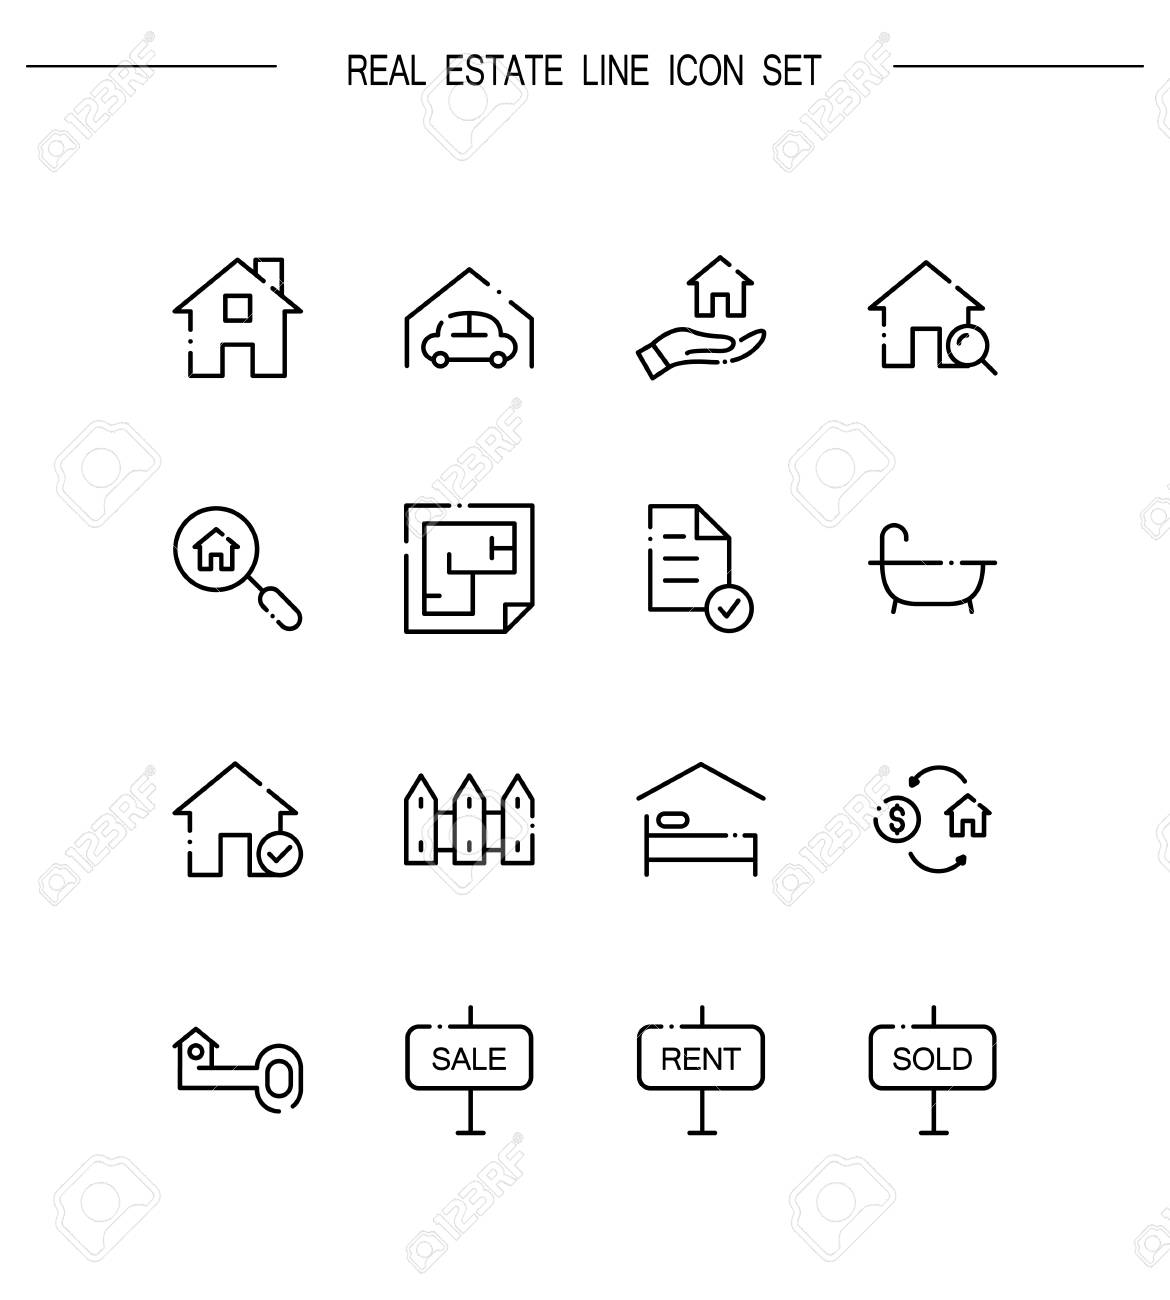 Real estate flat icon set collection of high quality outline real estate flat icon set collection of high quality outline symbols for web design biocorpaavc Image collections